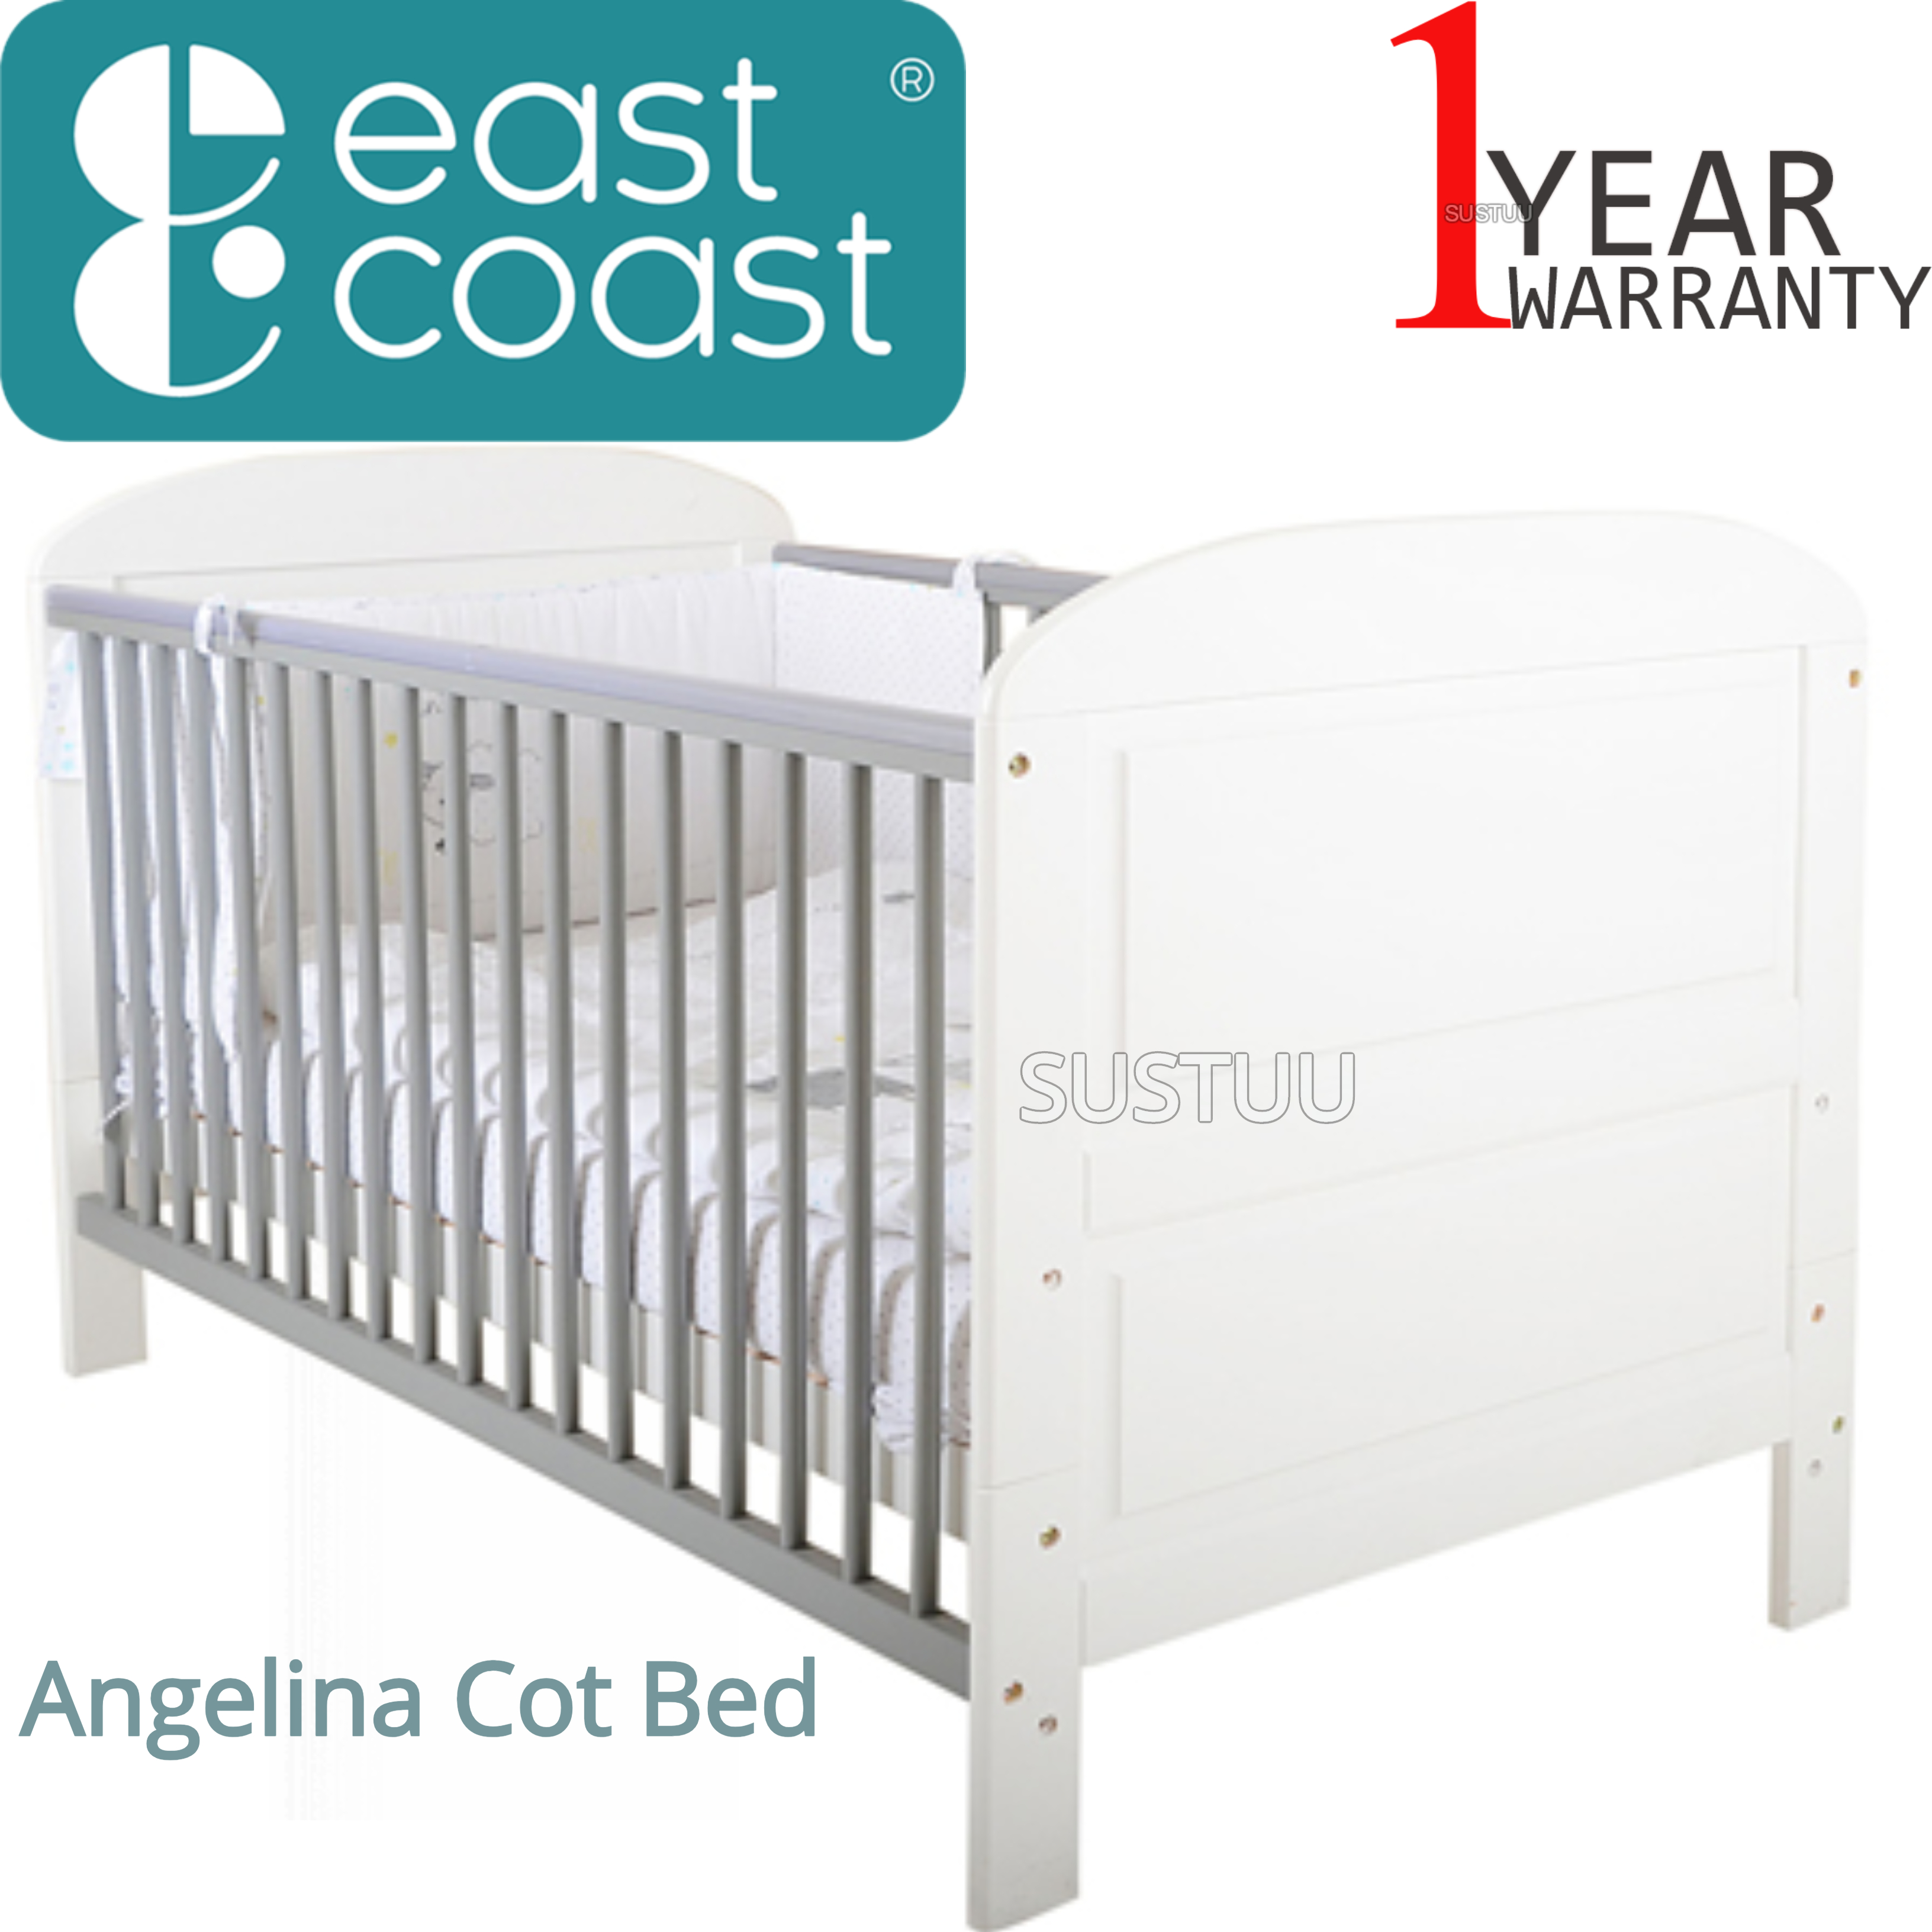 East Coast Angelina Cot Bed | Baby/Kids Cot With 2 Protective Teething Rails | White